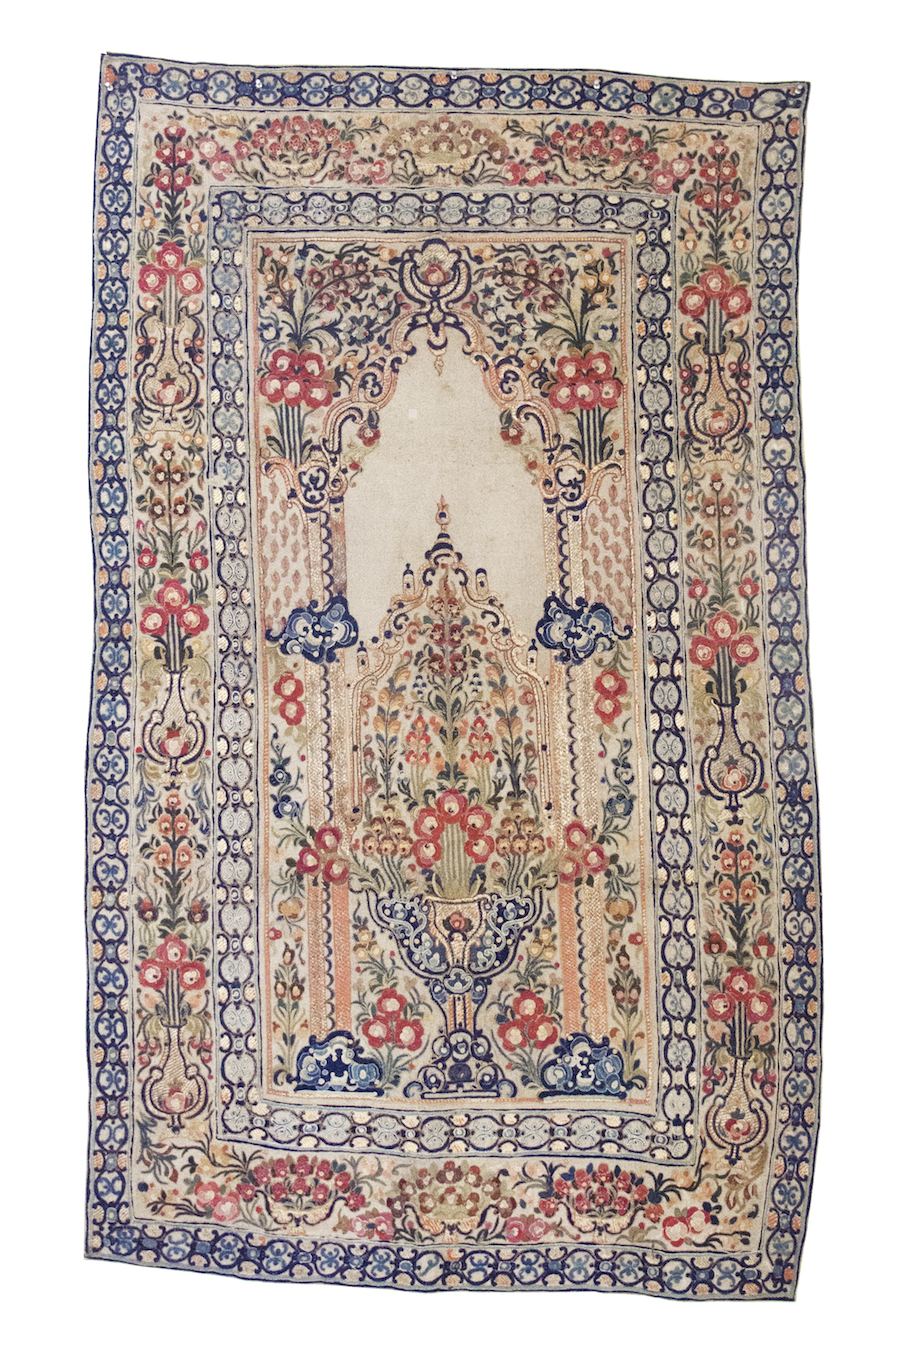 Ottoman  Applique  and Embroidered Textile